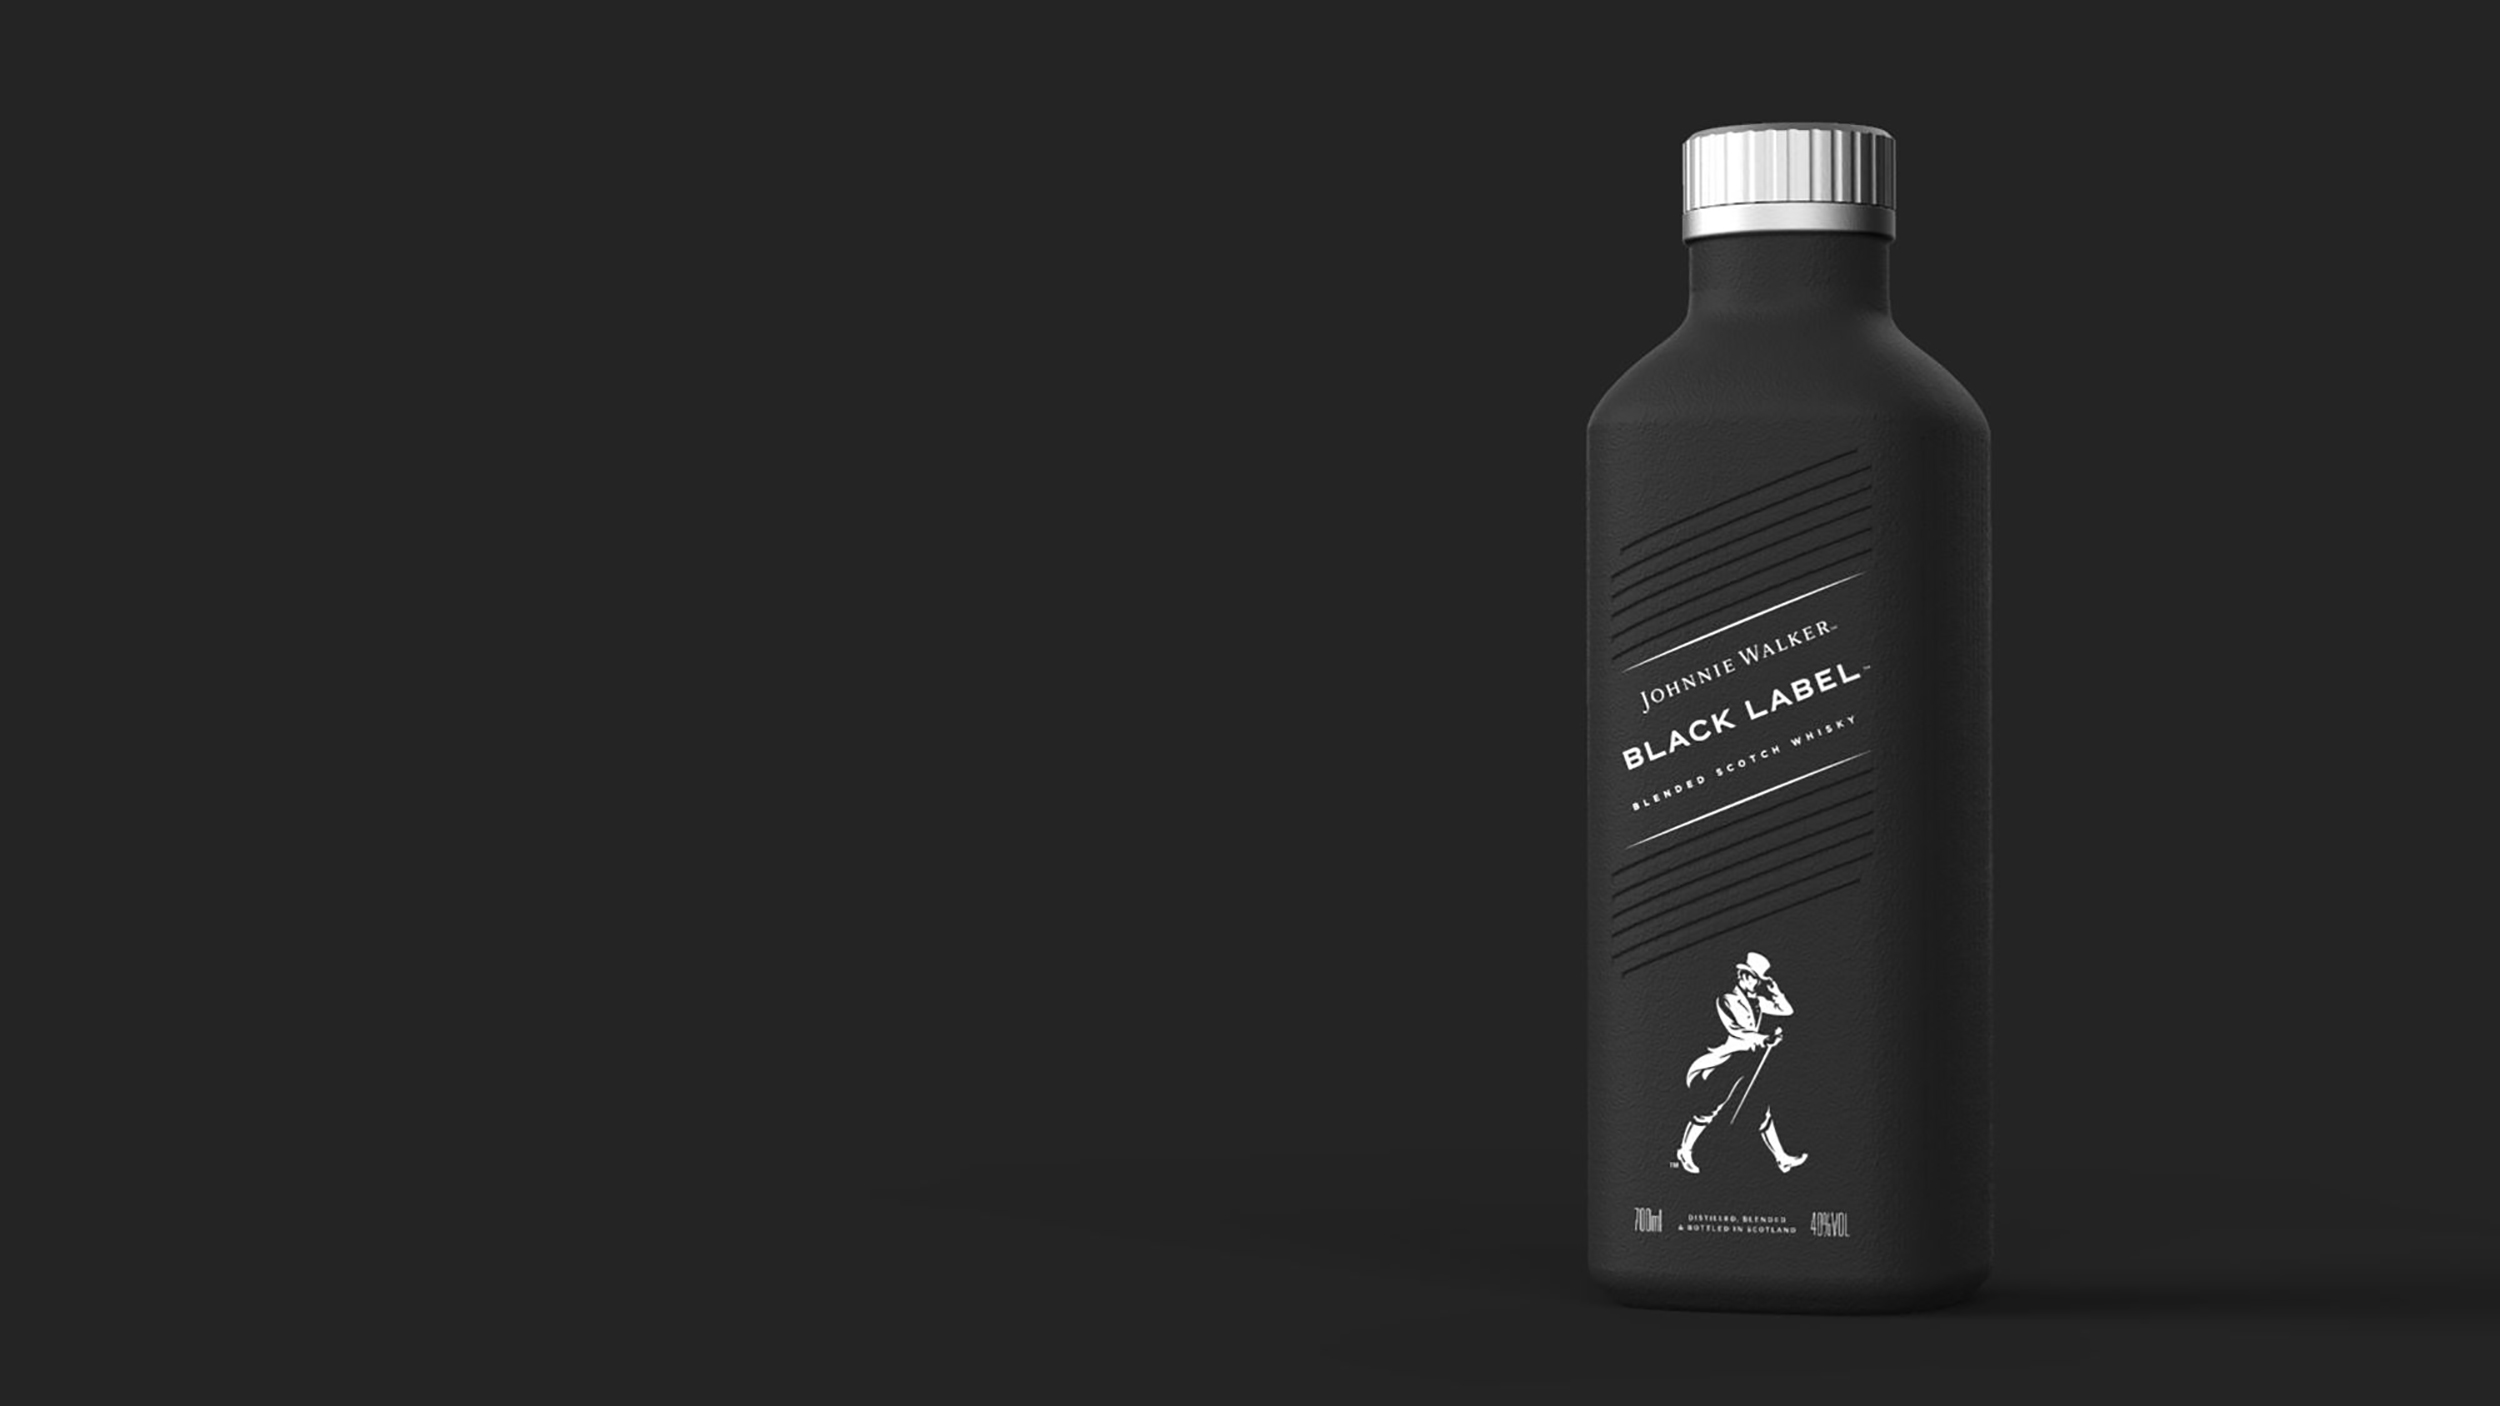 Johnnie Walker whisky will be sold in paper bottles next year